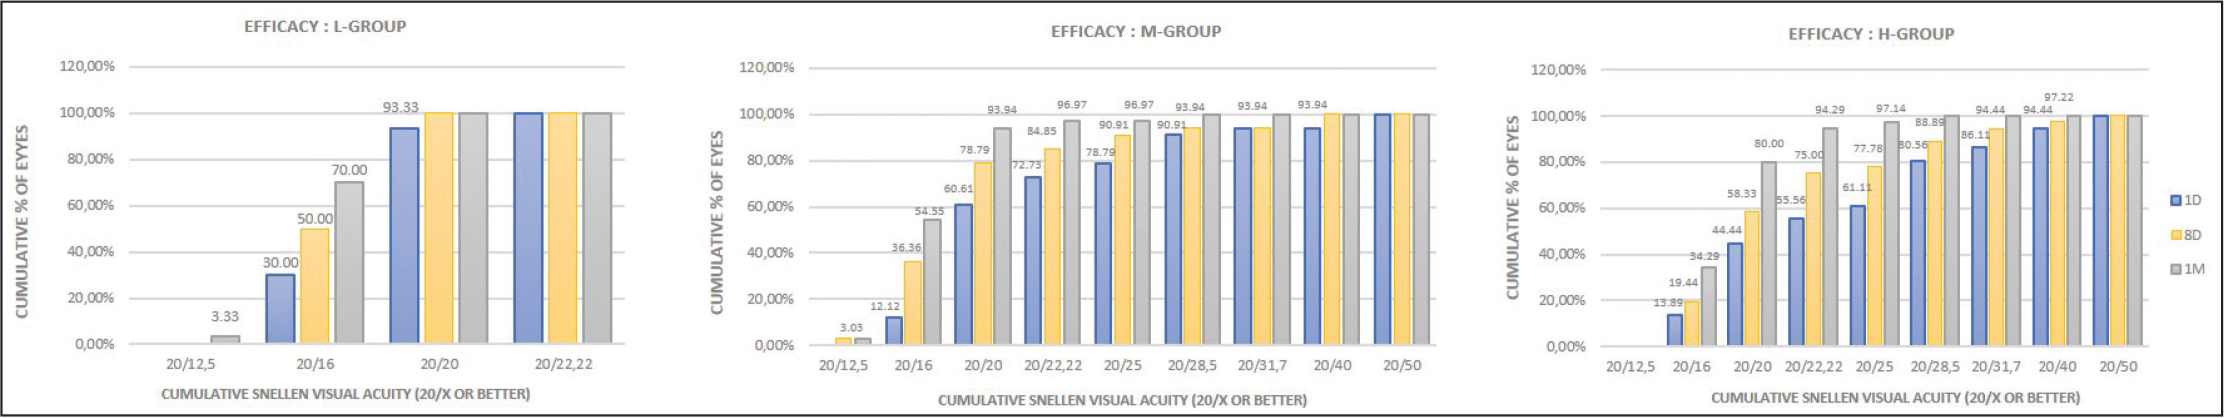 Efficacy. Cumulative percentage of eyes attaining specified cumulative levels of uncorrected distance visual acuity 1 day, 8 days, and 1 month after small incision lenticule extraction with low energy levels for (A) low myopia (L-Group), (B) moderate myopia (M-Group), and (C) high myopia (H-Group).